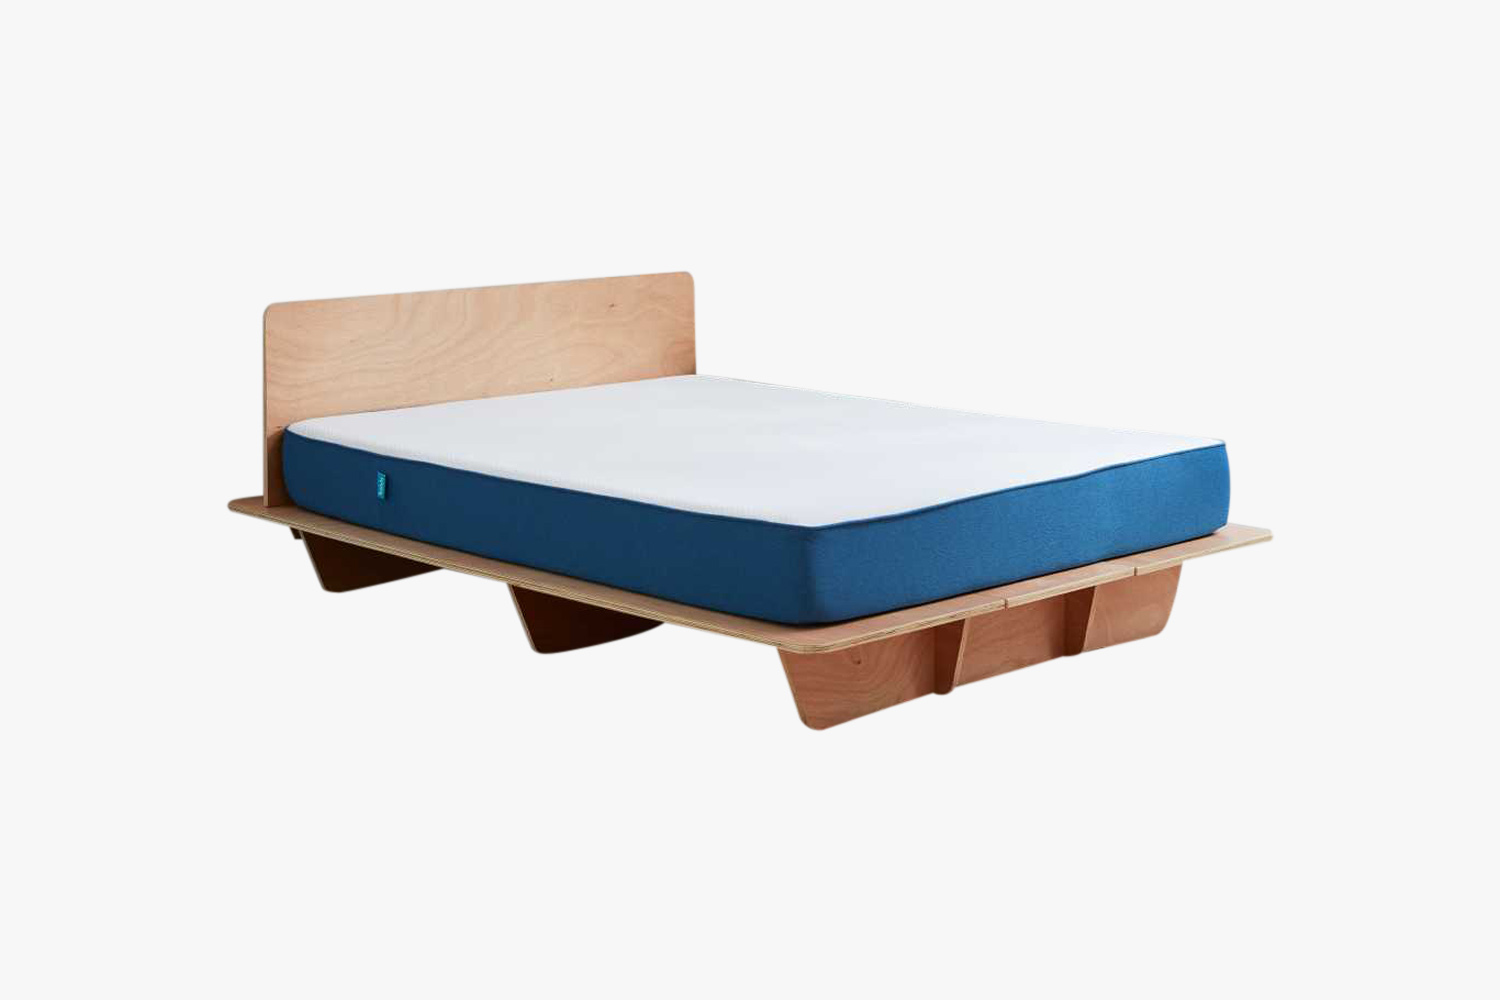 Koala mattress and wooden bed frame